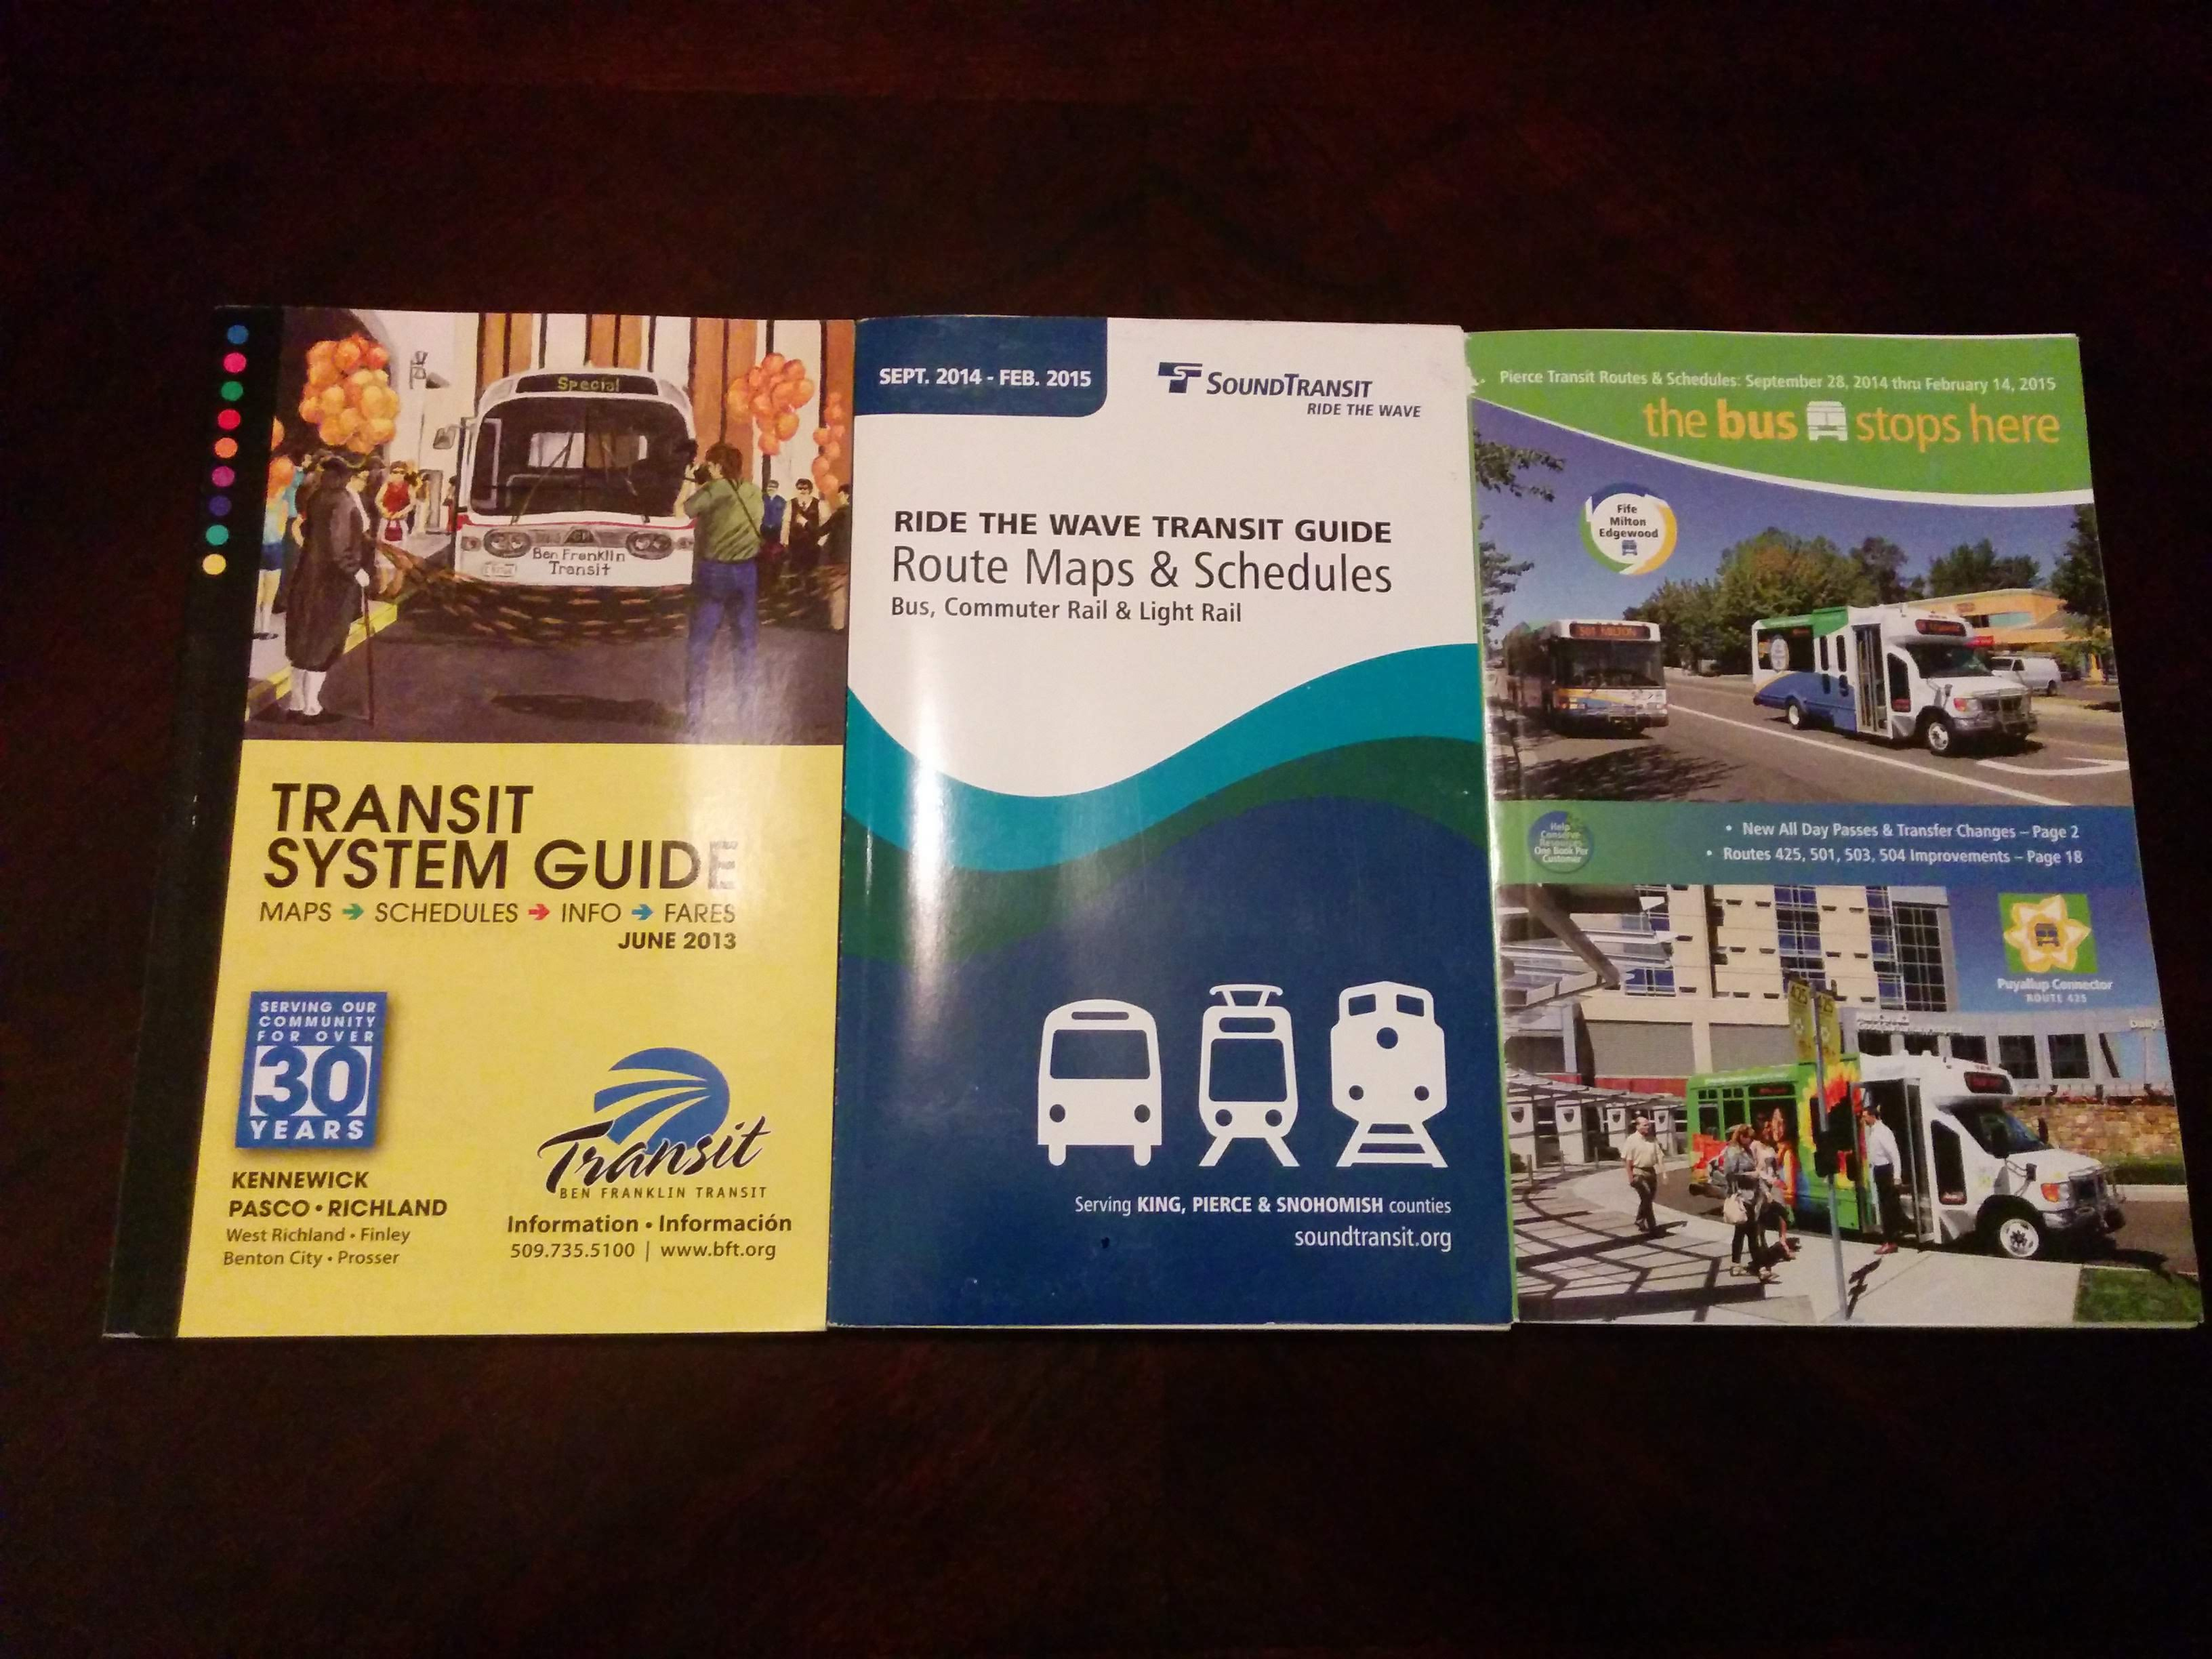 The Transit Museum by HARTride 2012 – The Global Transit Guidebook